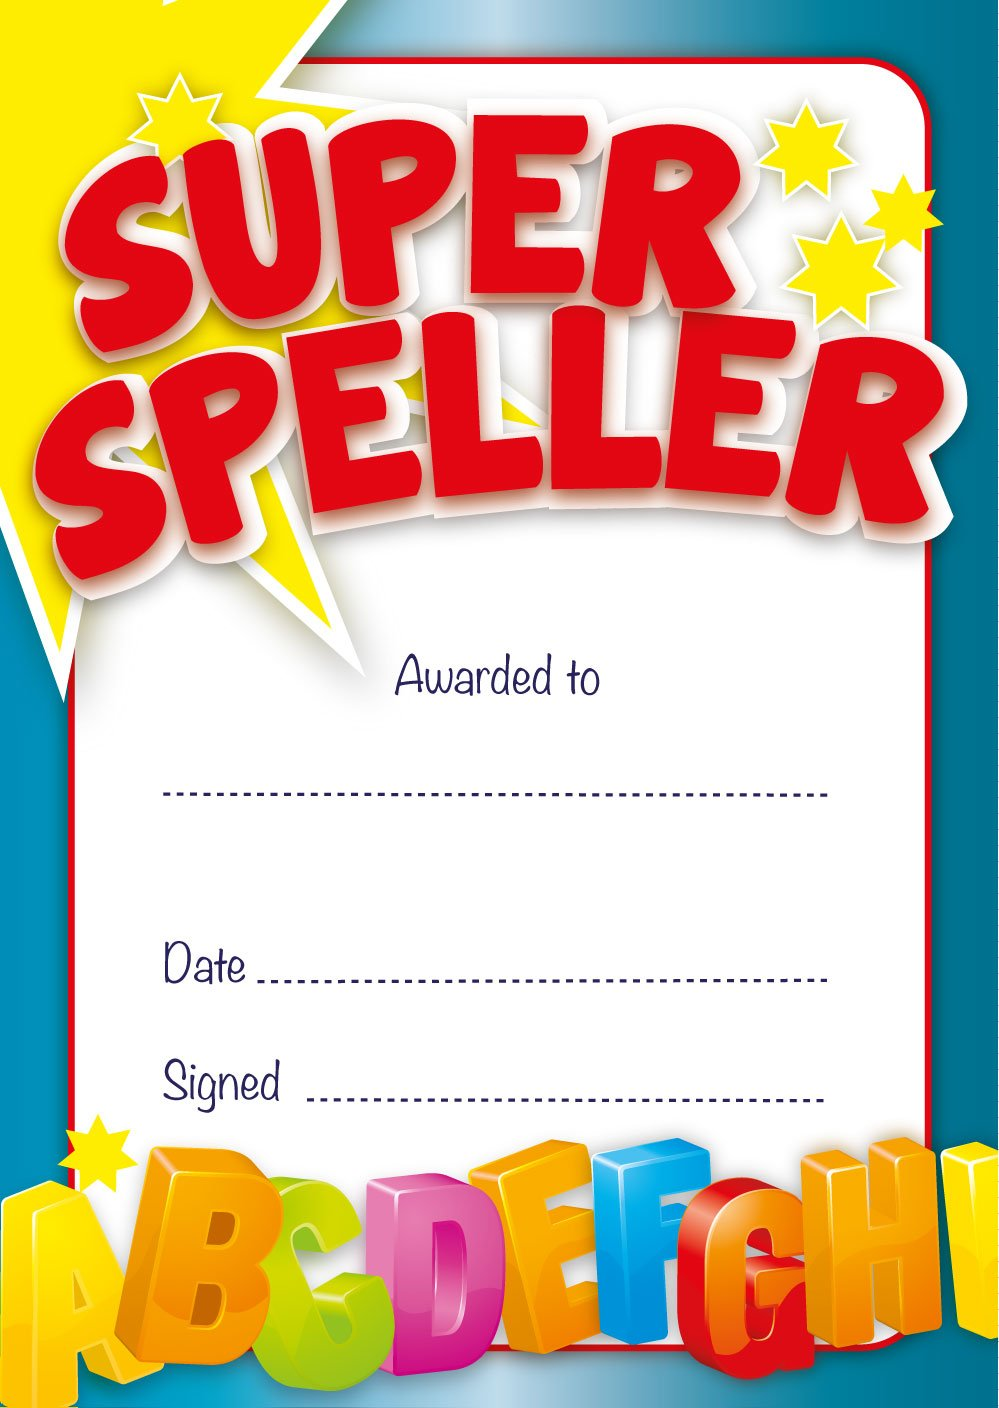 Super speller certificate teacher or parents rewards amazon super speller certificate teacher or parents rewards amazon office products 1betcityfo Image collections